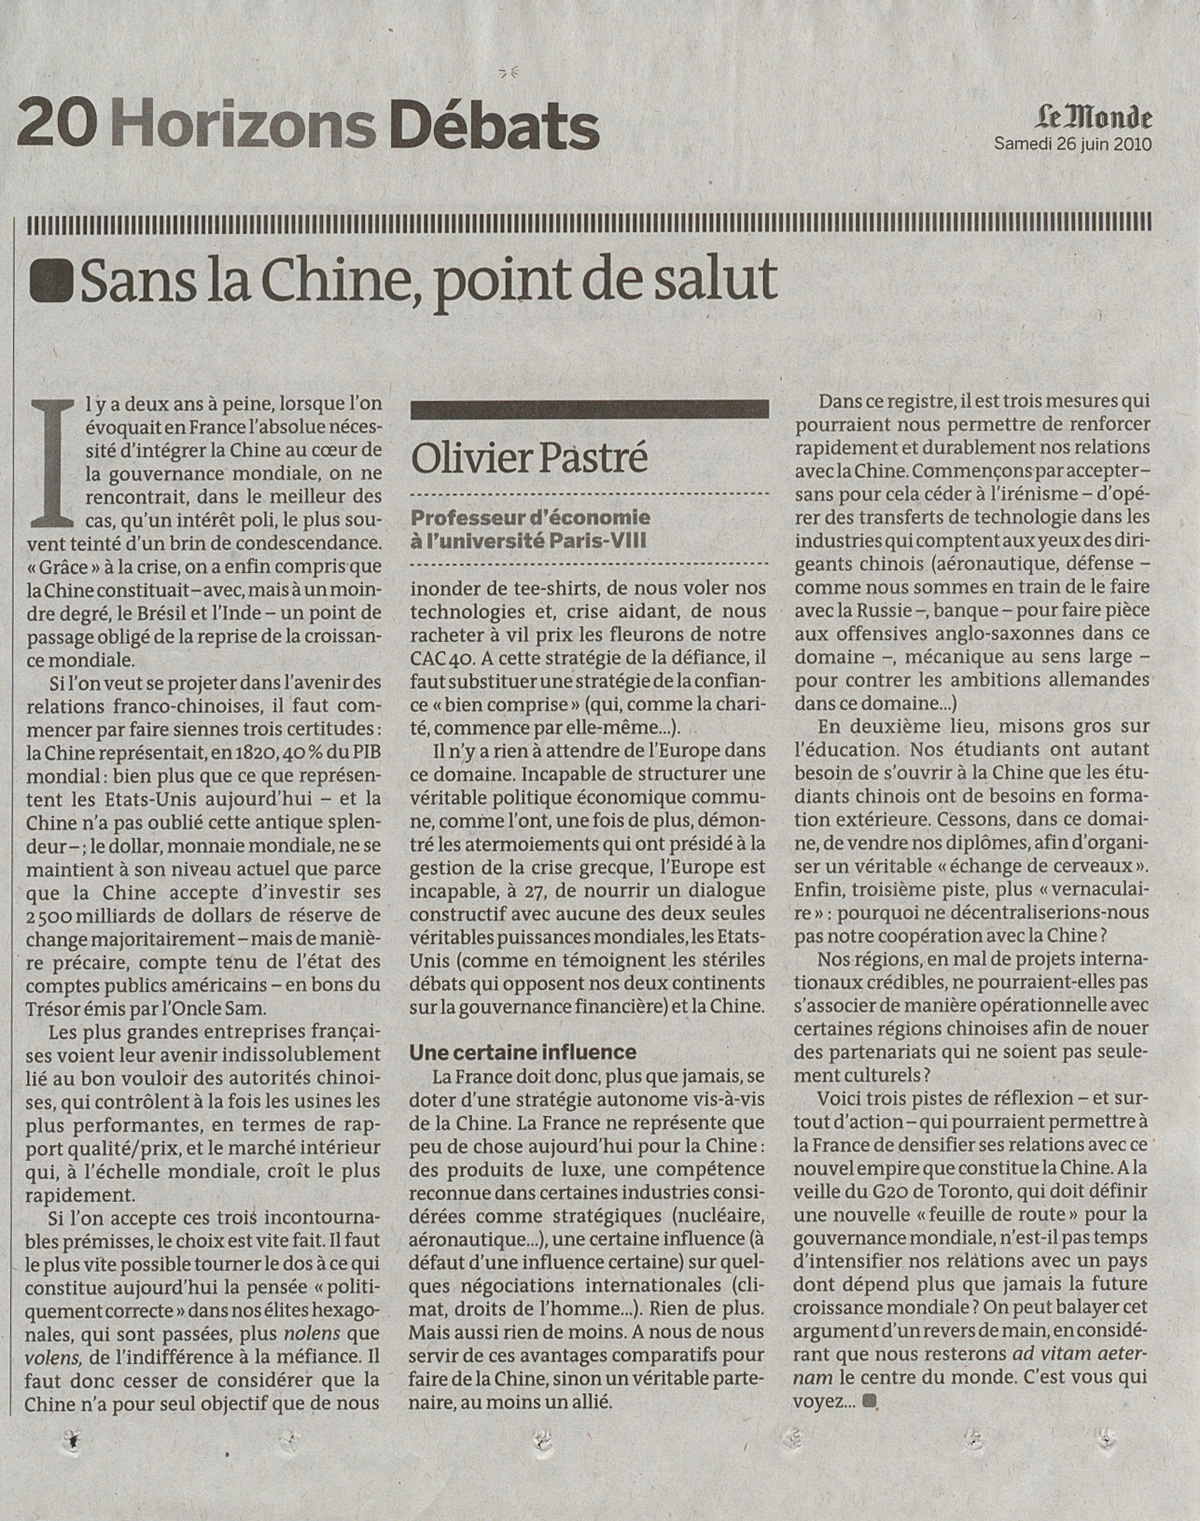 monde_2010-06-26_sans-la-chine-point-de-salut